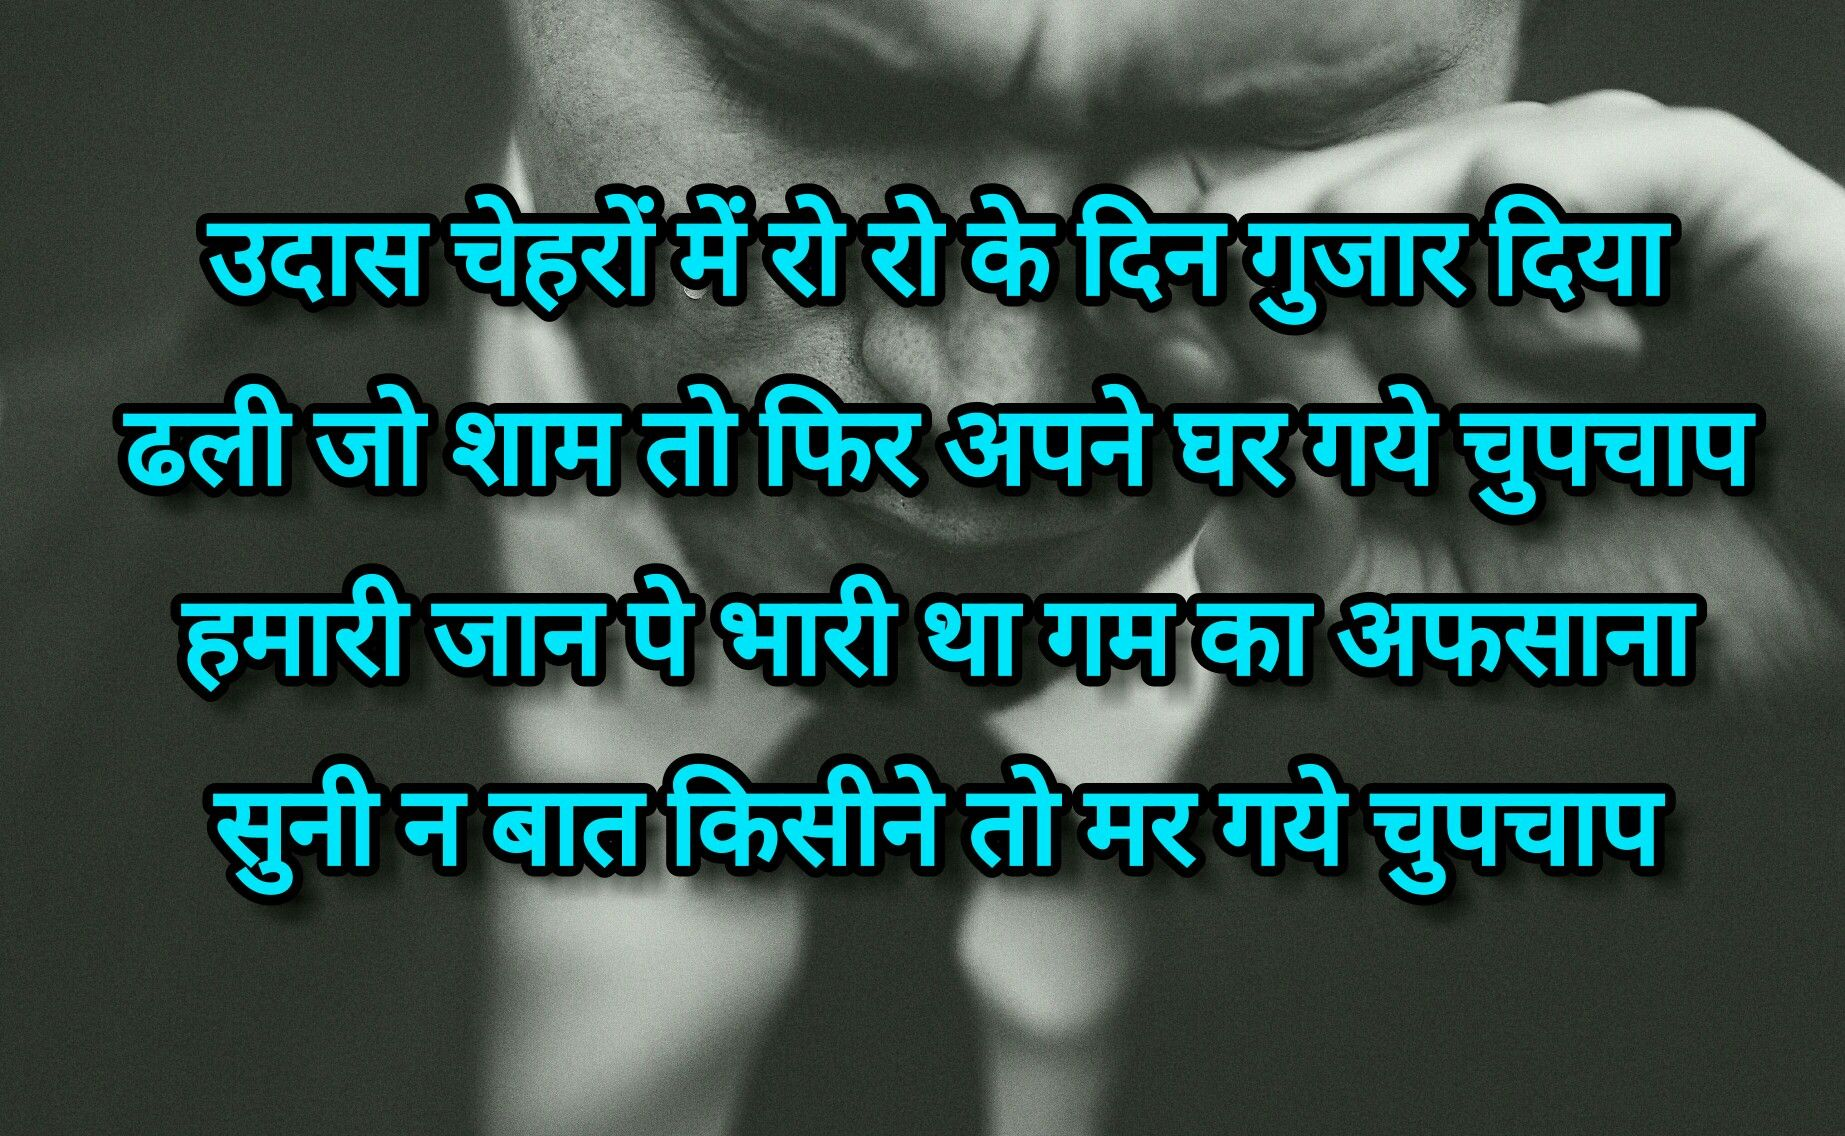 Hindi Quotes Hindi Quotes Cry Shayari Words Hindi Quotes